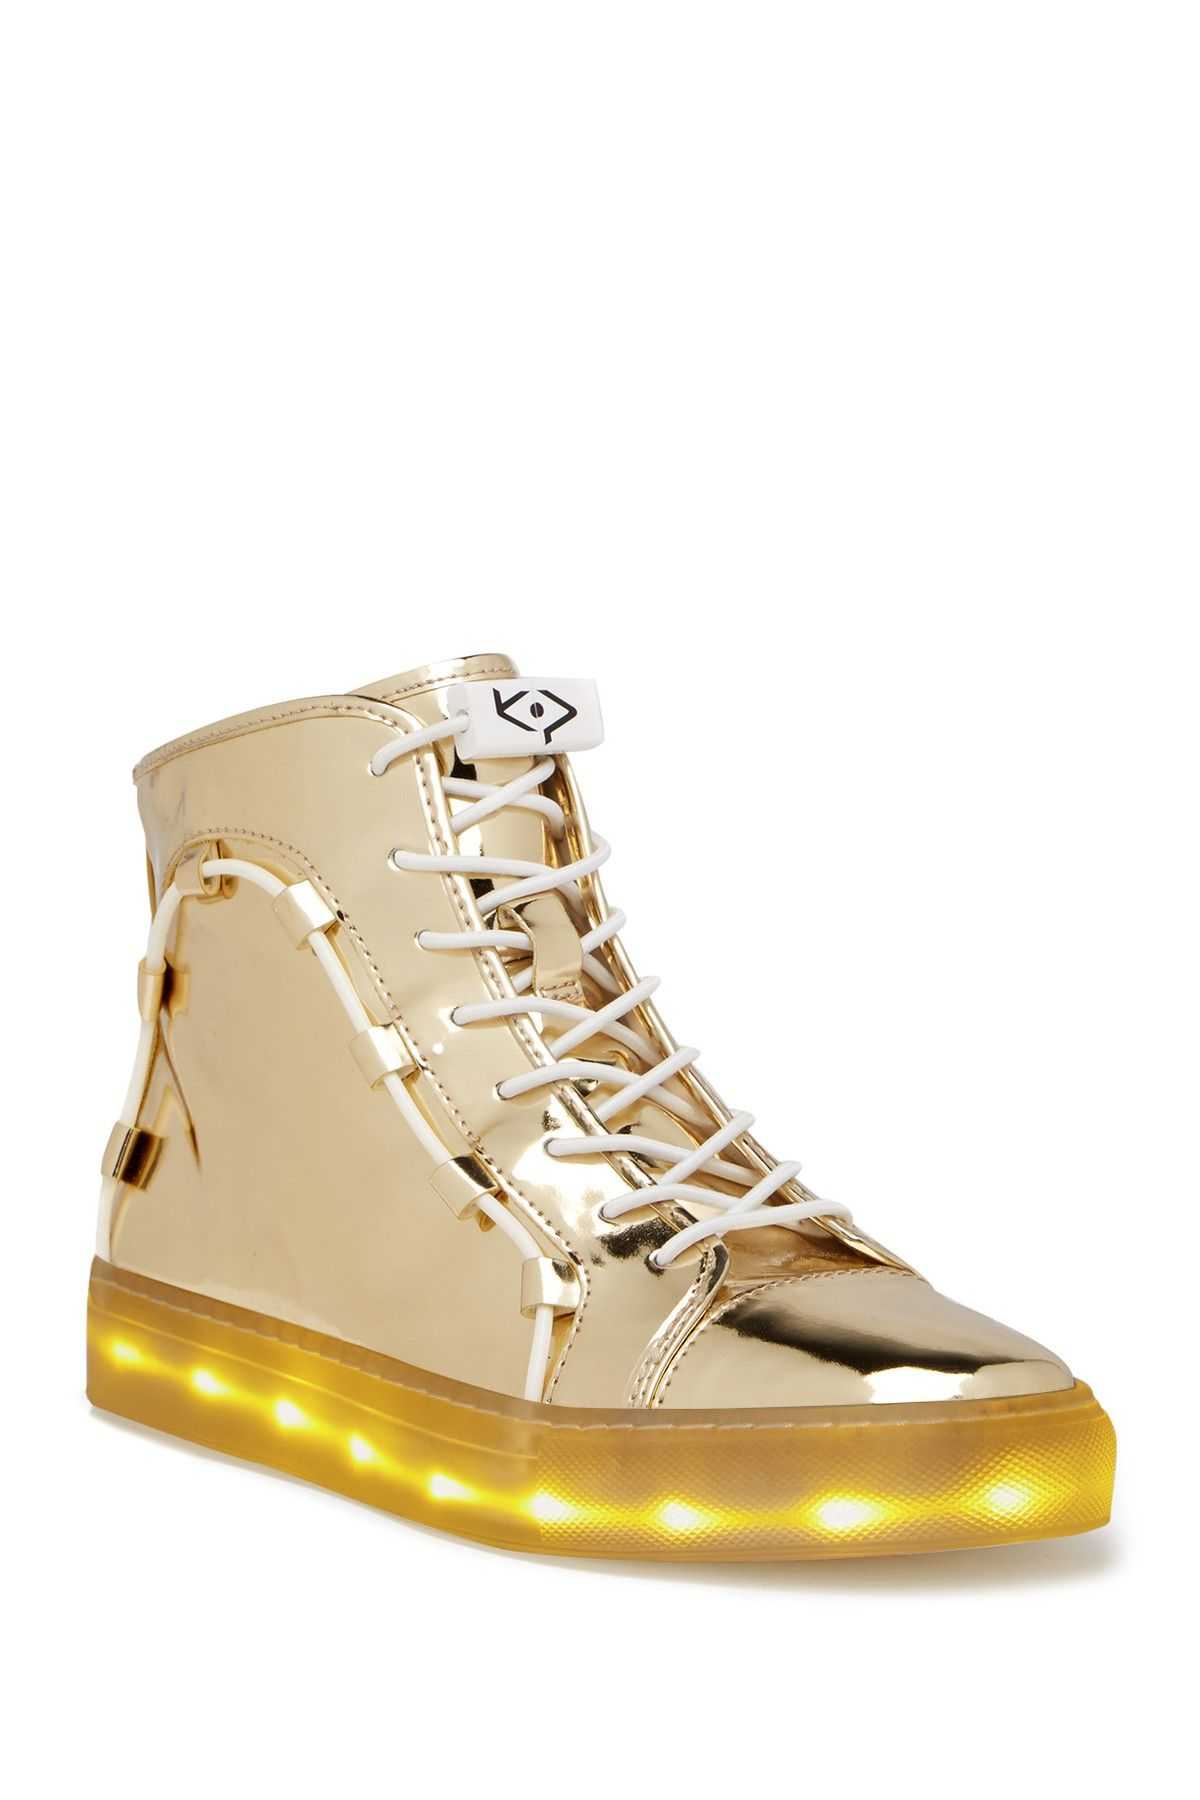 katy perry light up shoes